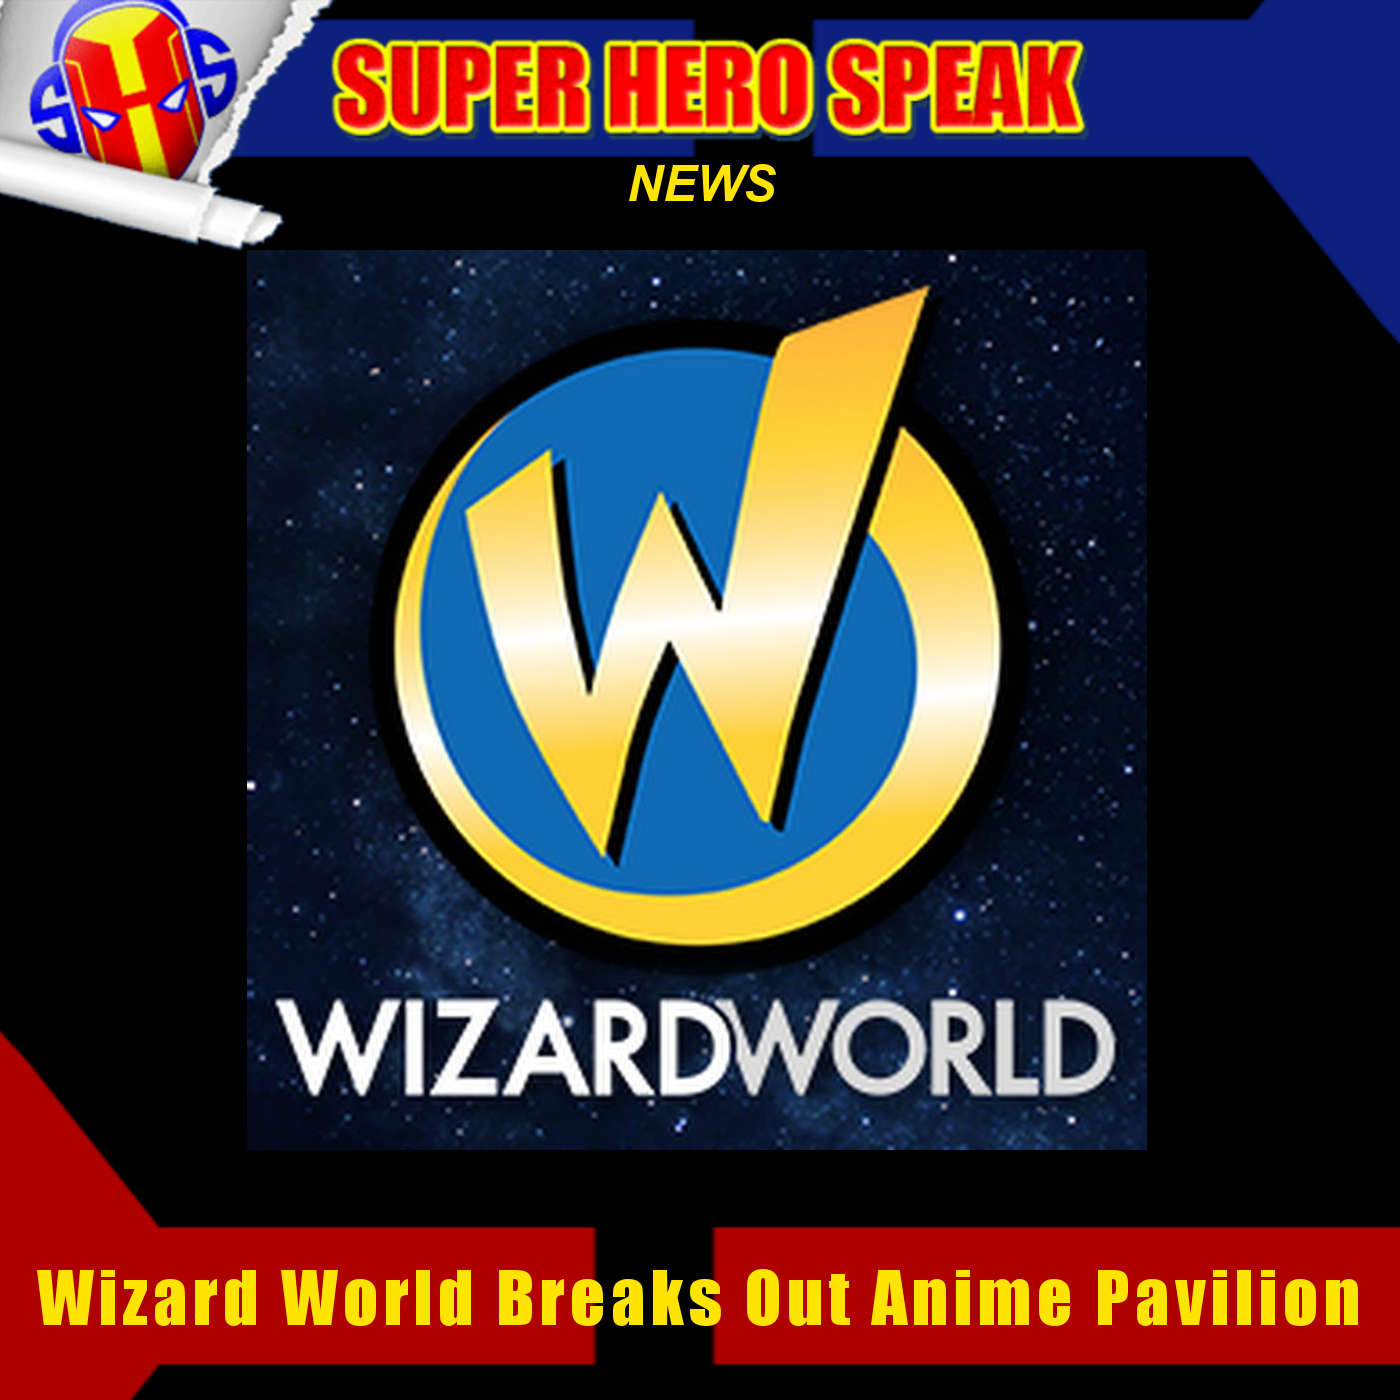 SHSNews: Wizard World Breaks Out Anime Pavilion